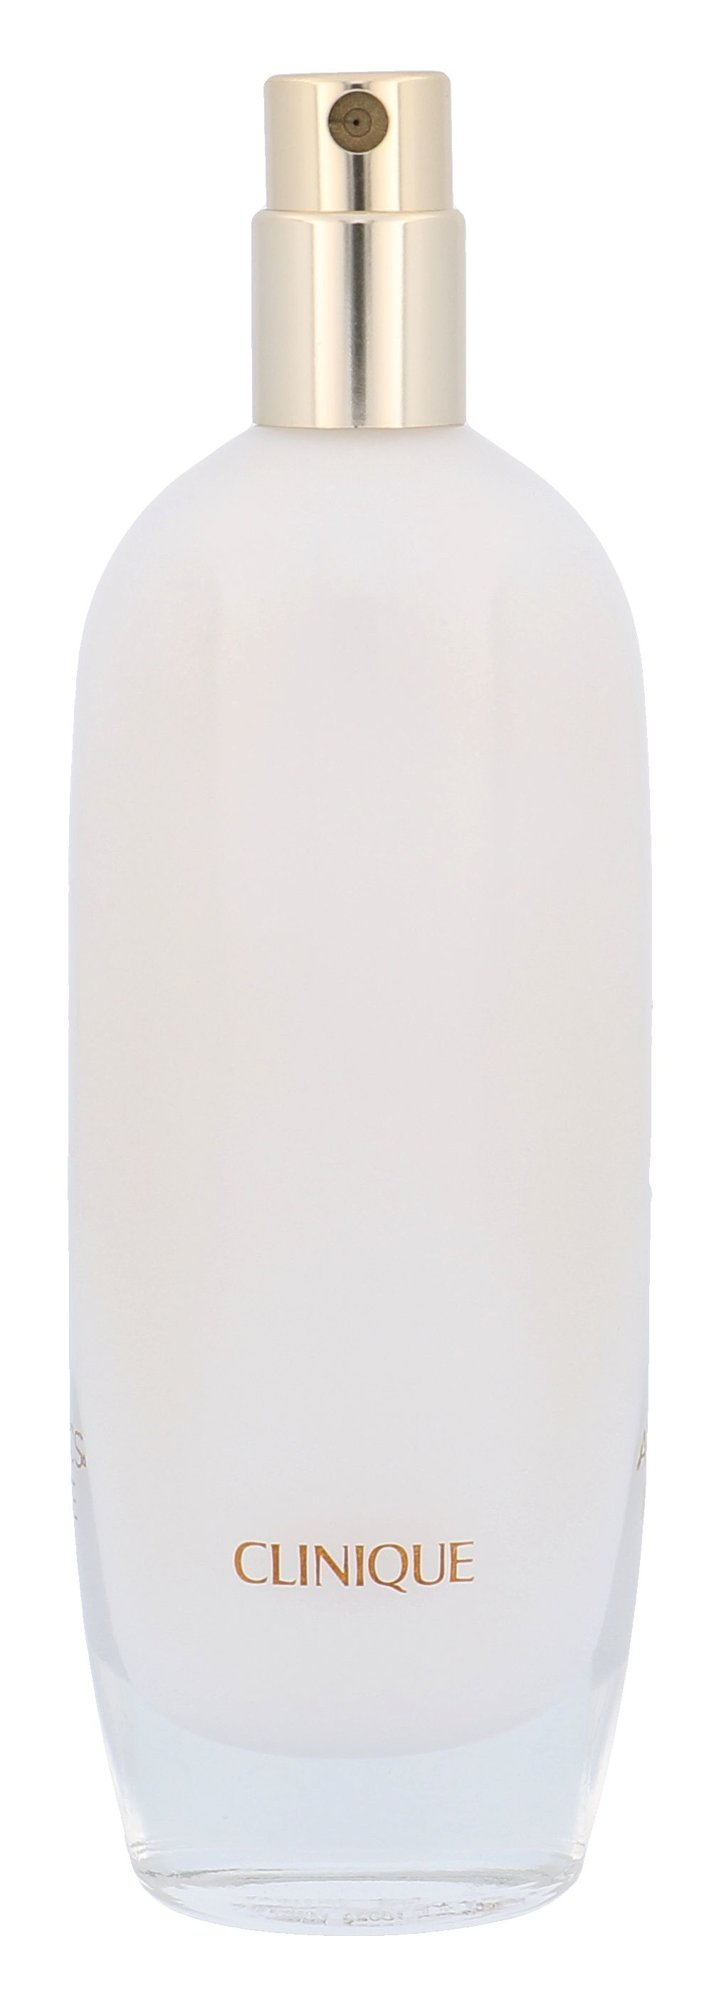 Clinique Aromatics In White EDP 50ml